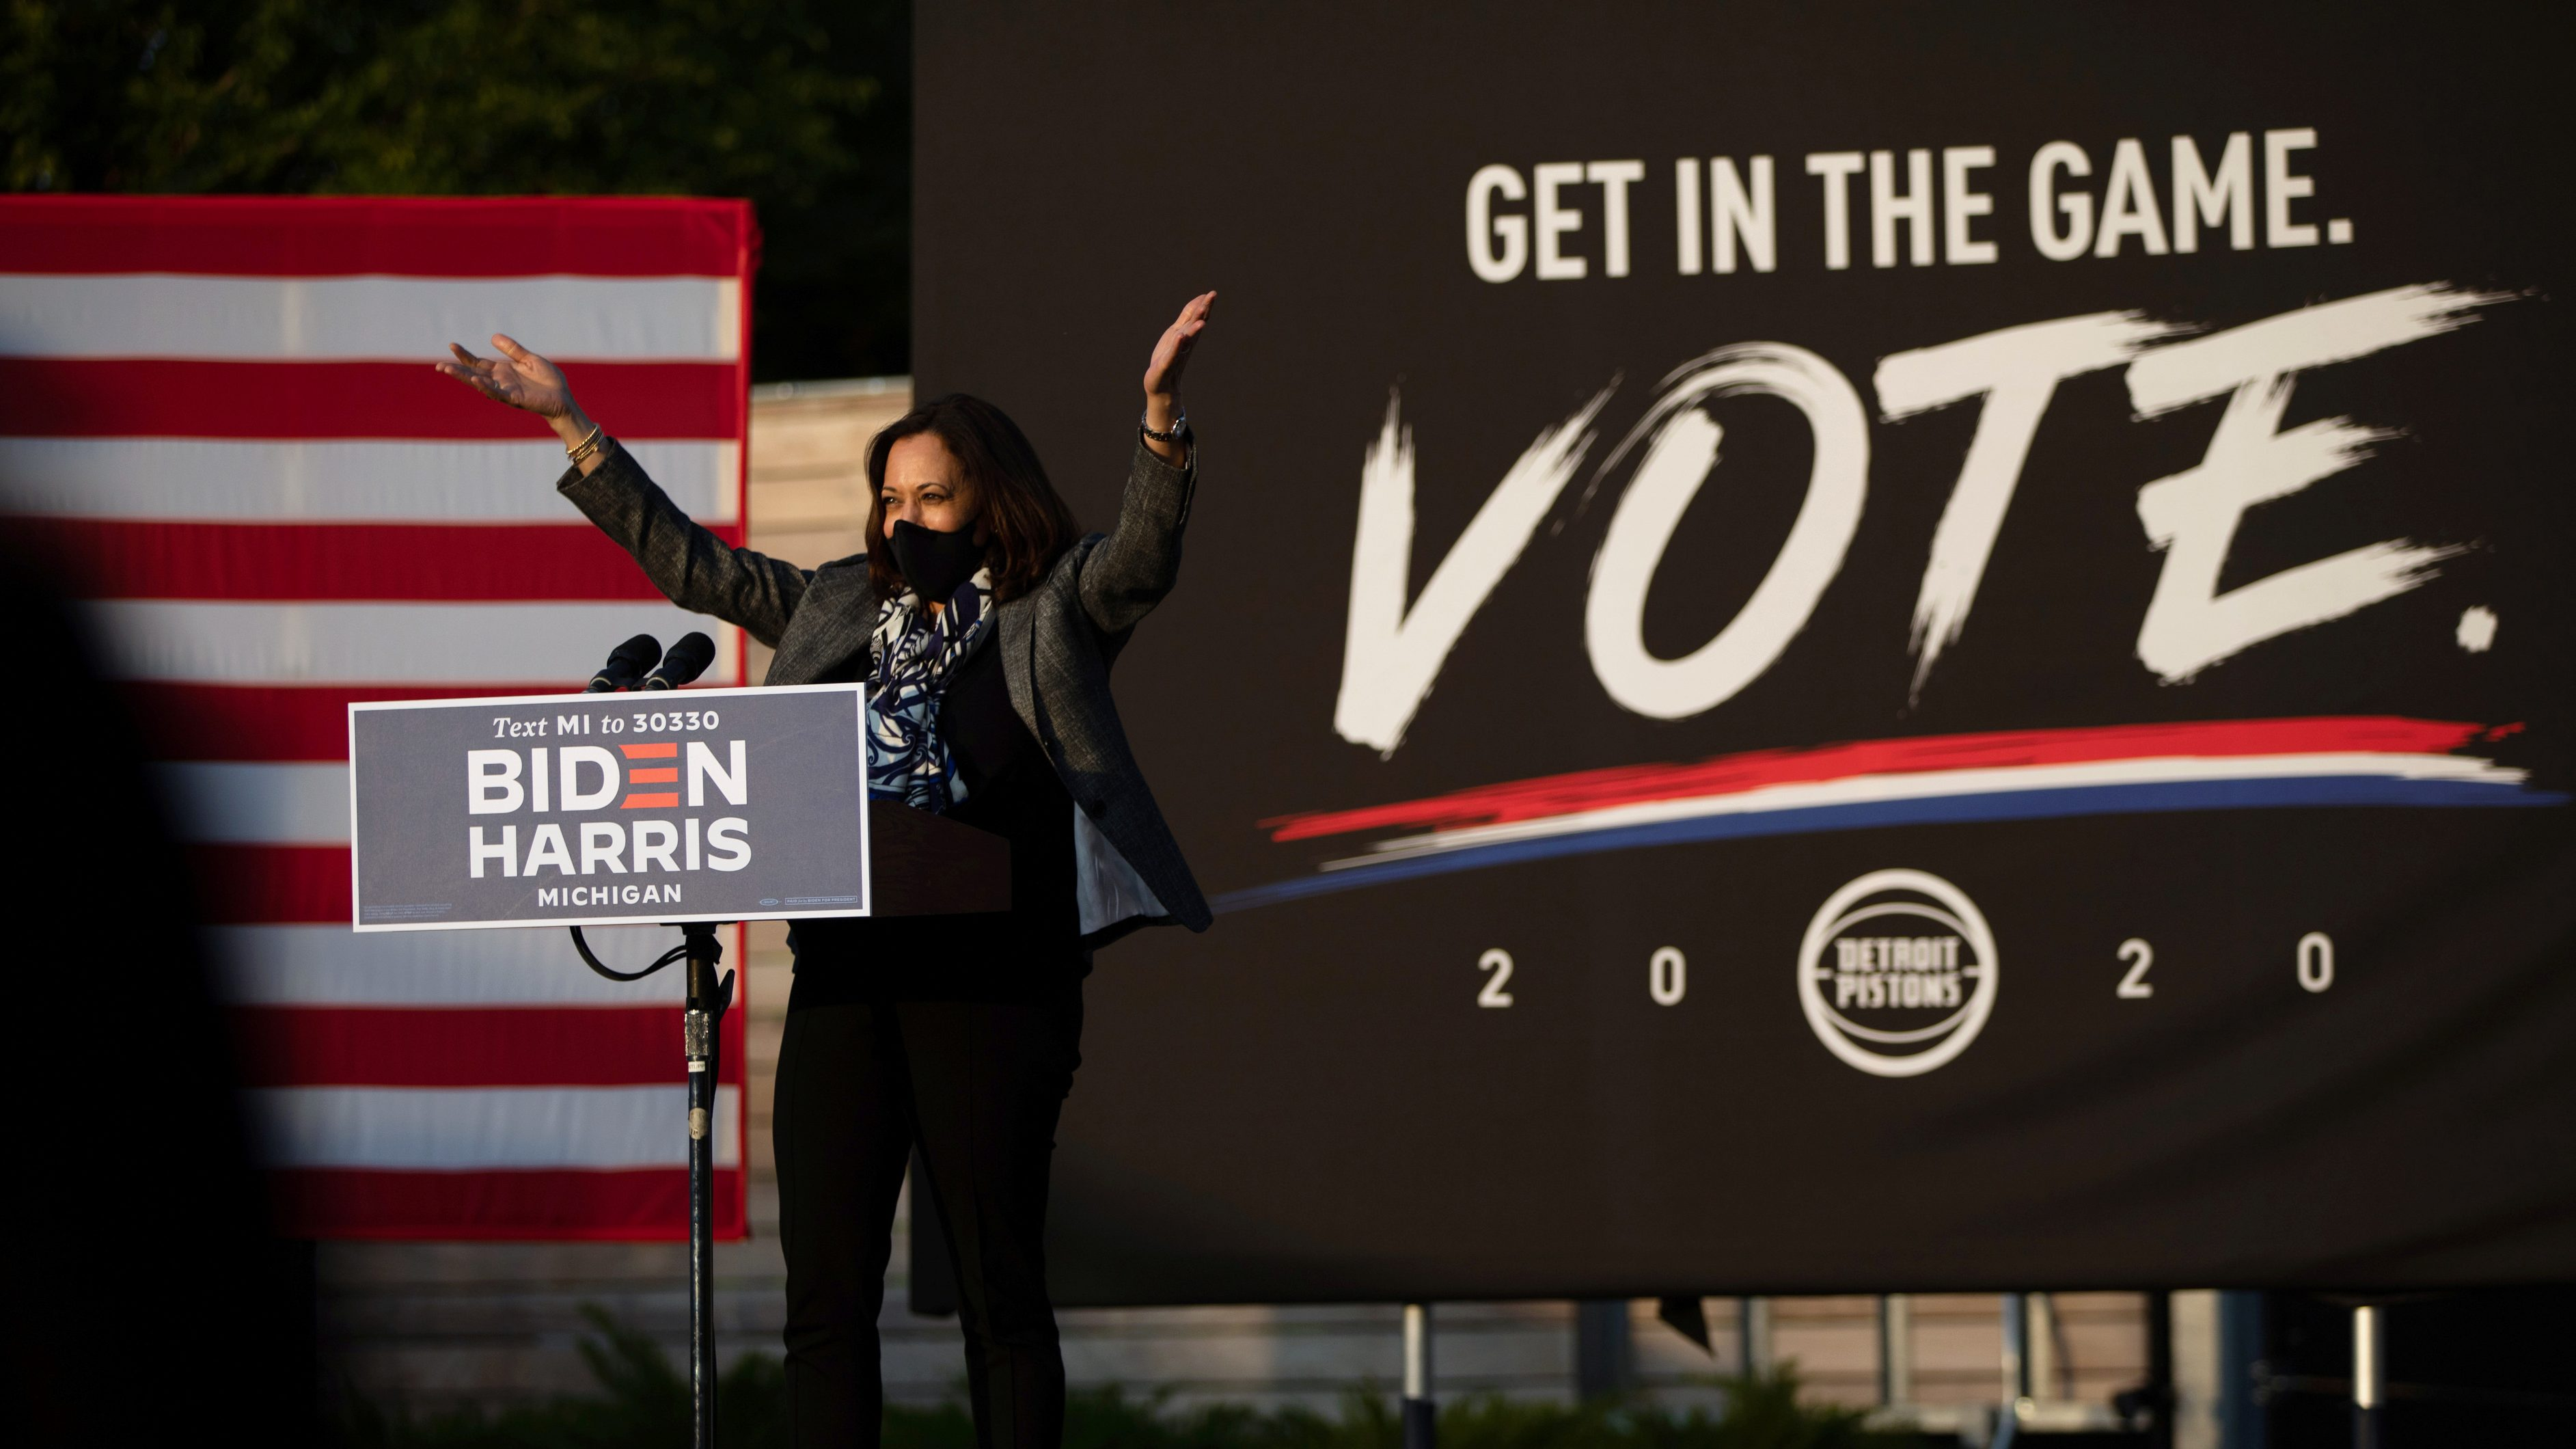 Democratic vice presidential nominee Harris campaigns in Michigan